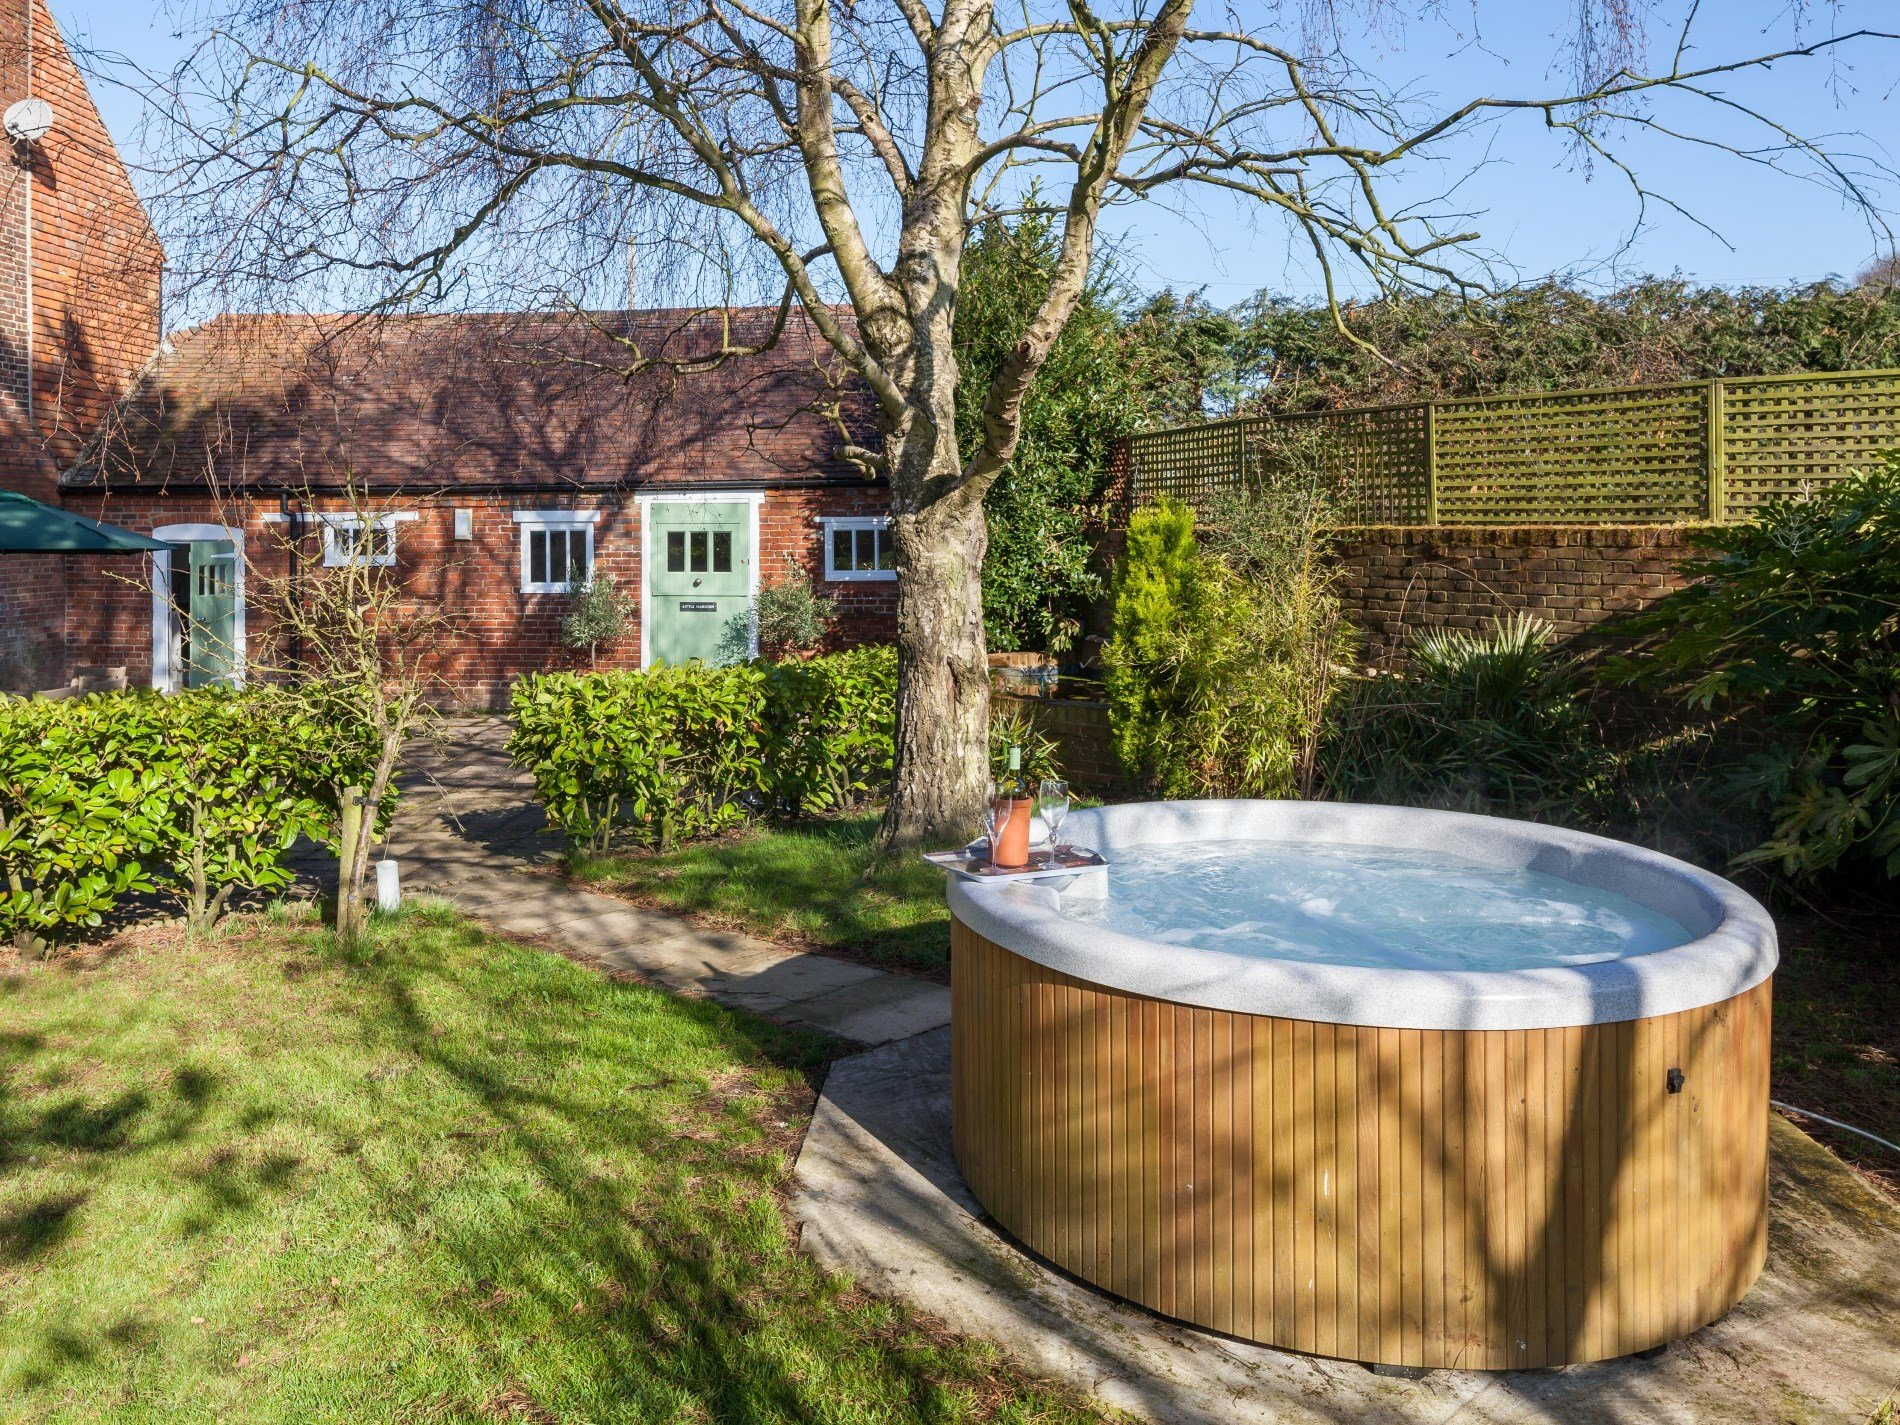 Sink into the bubbly hot tub and enjoy the warmth